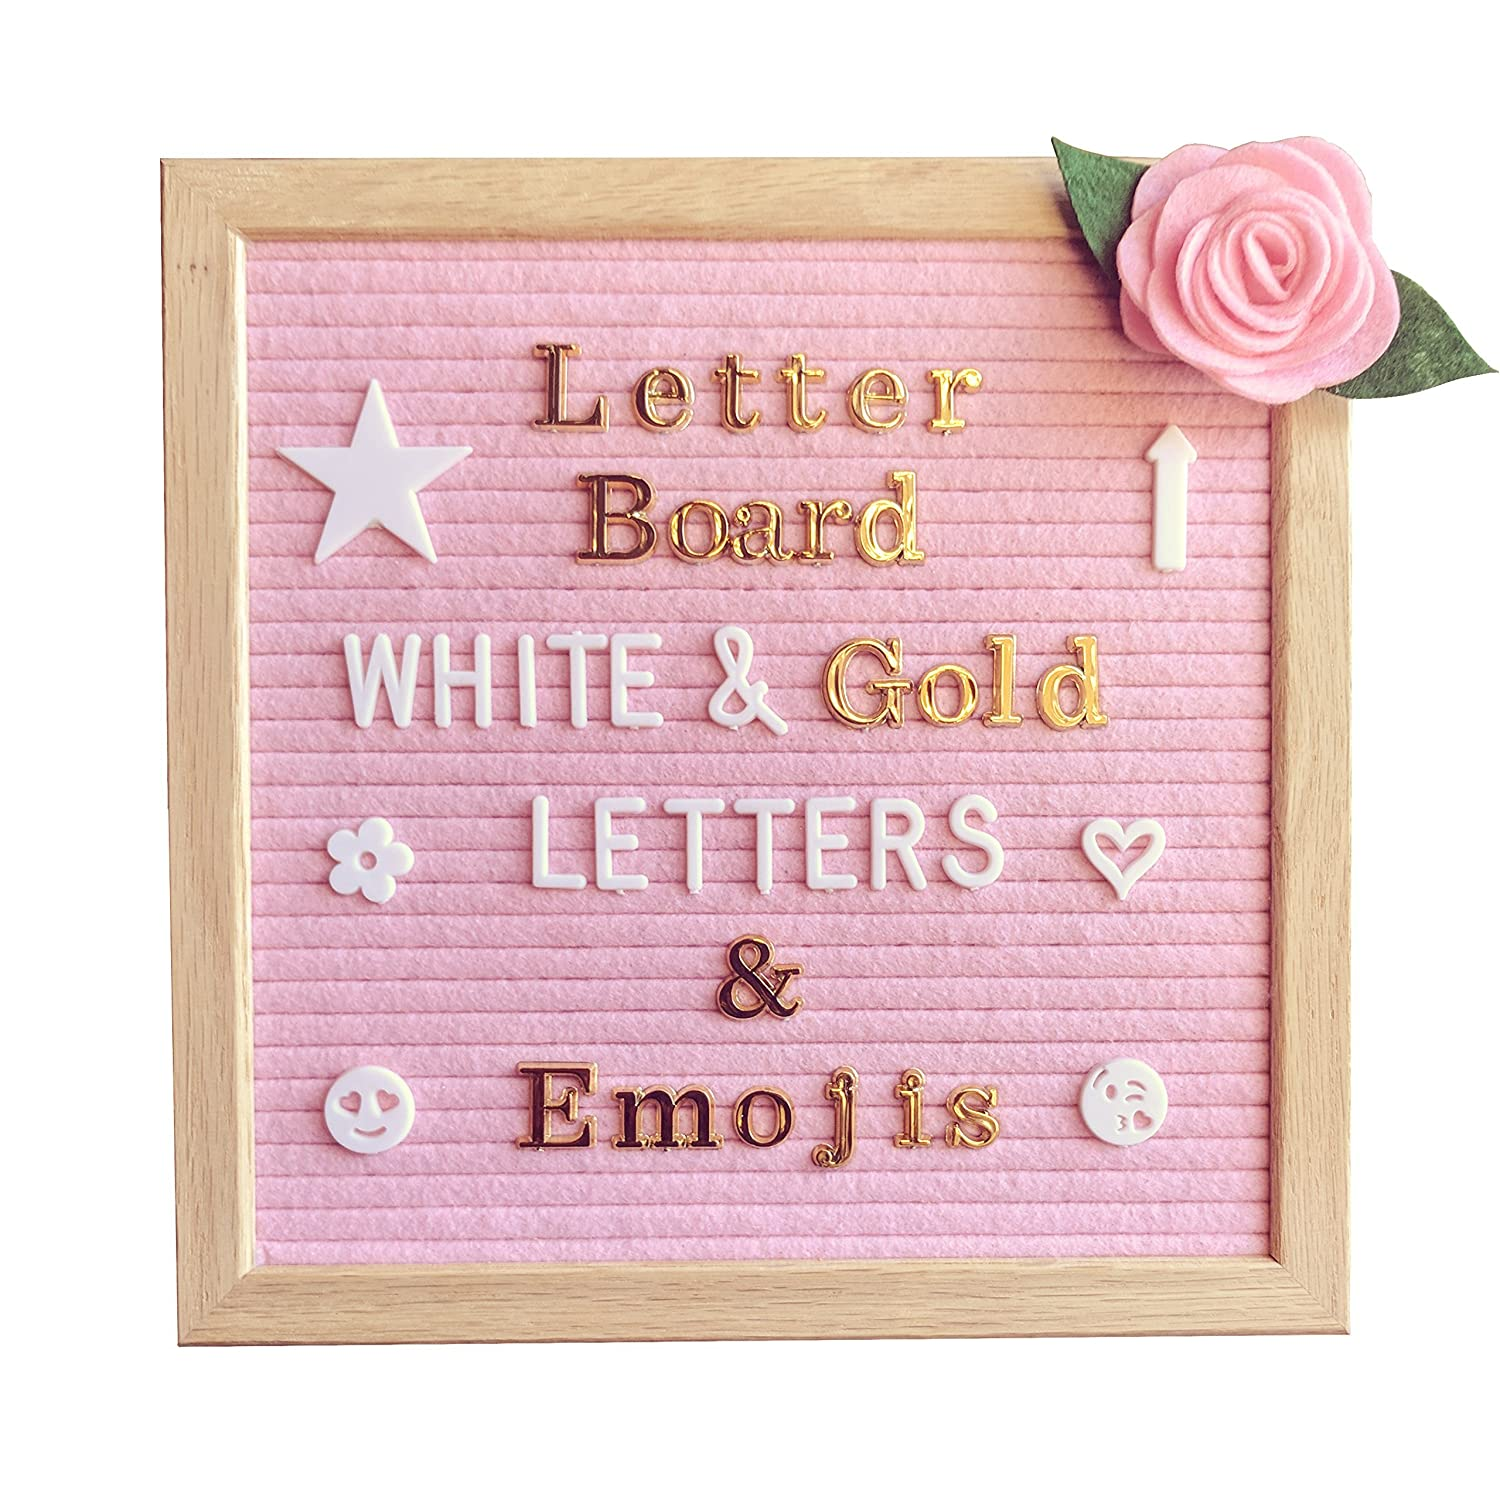 Pink Felt Letter Board 10x10 inches – Changeable Message Board Includes Pink Felt Flower, 335 White Letters & Emojis, 126 Shiny Gold Letters & Emojis, Wall Hanging Hook, Oak Frame, Canvas Bag Heart and Soul